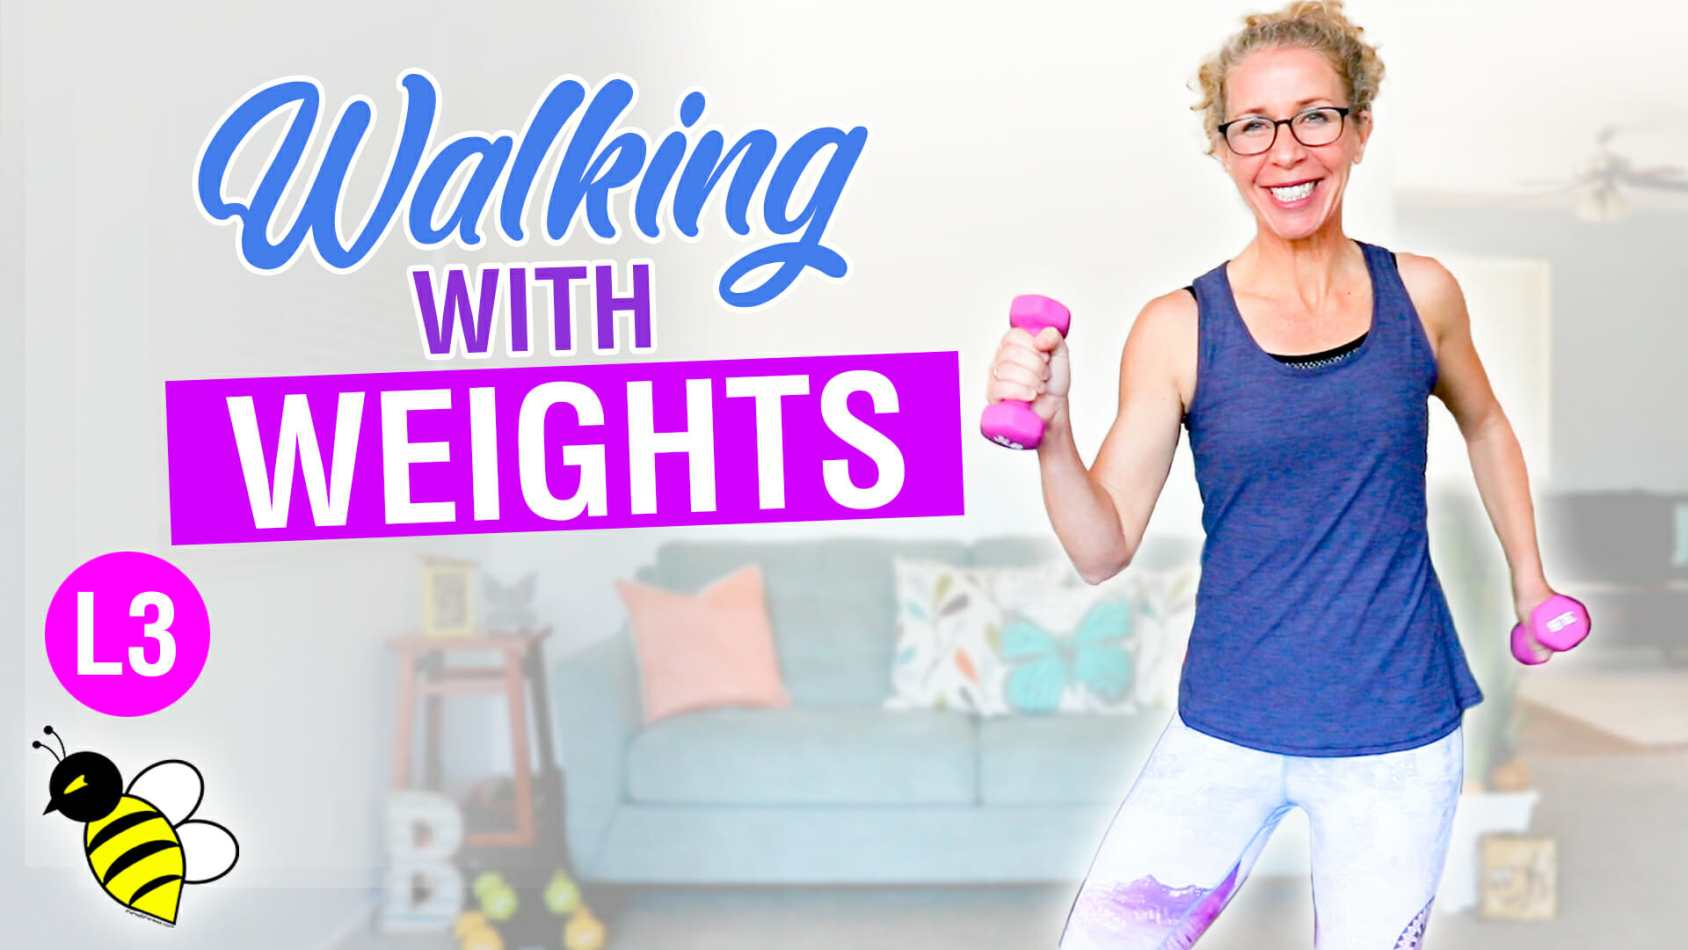 WALKING with WEIGHTS 40 minute osteoporosis prevention workout